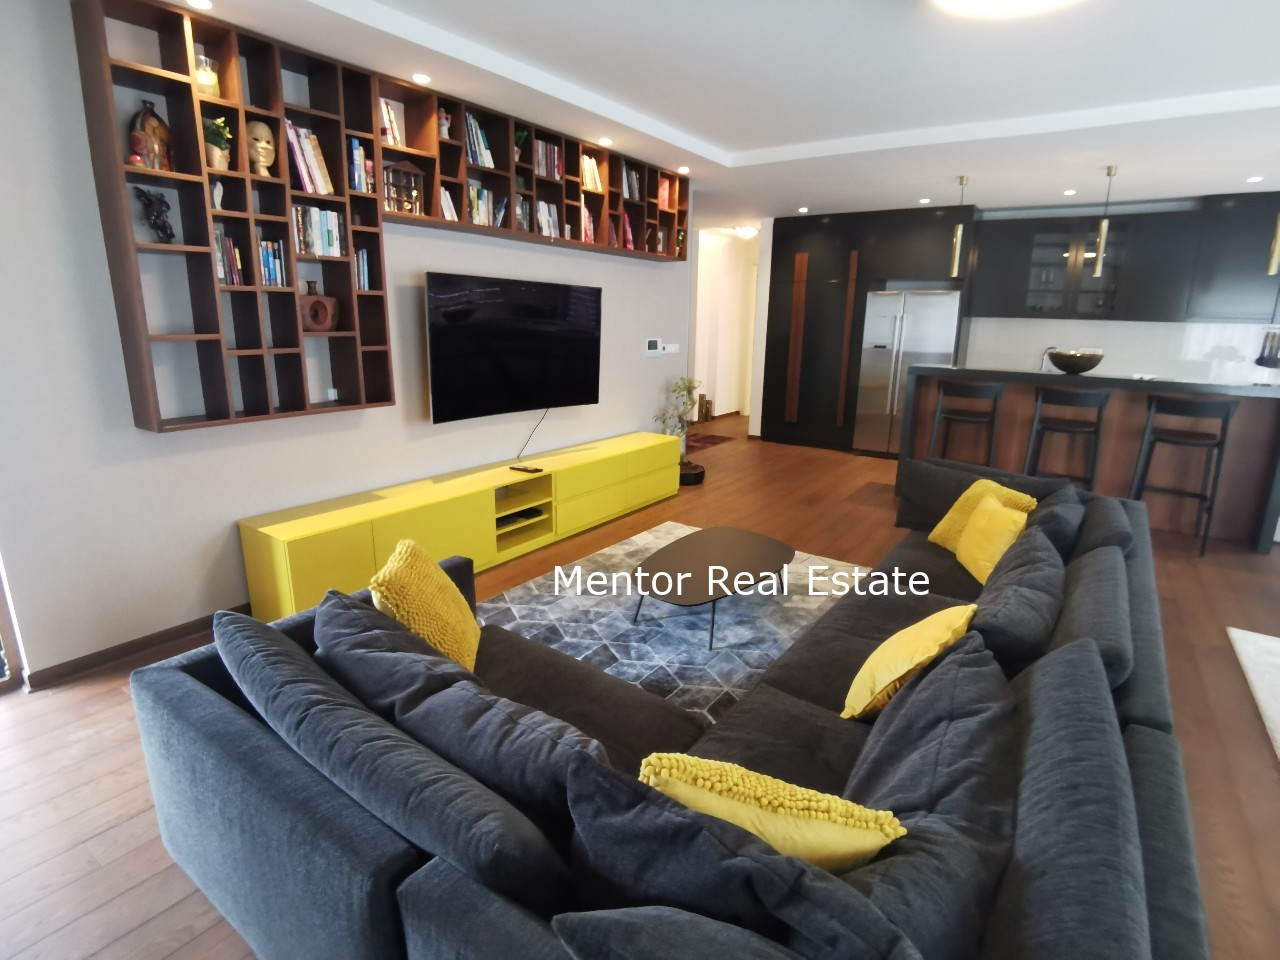 Vračar 130sqm luxury apartment for rent